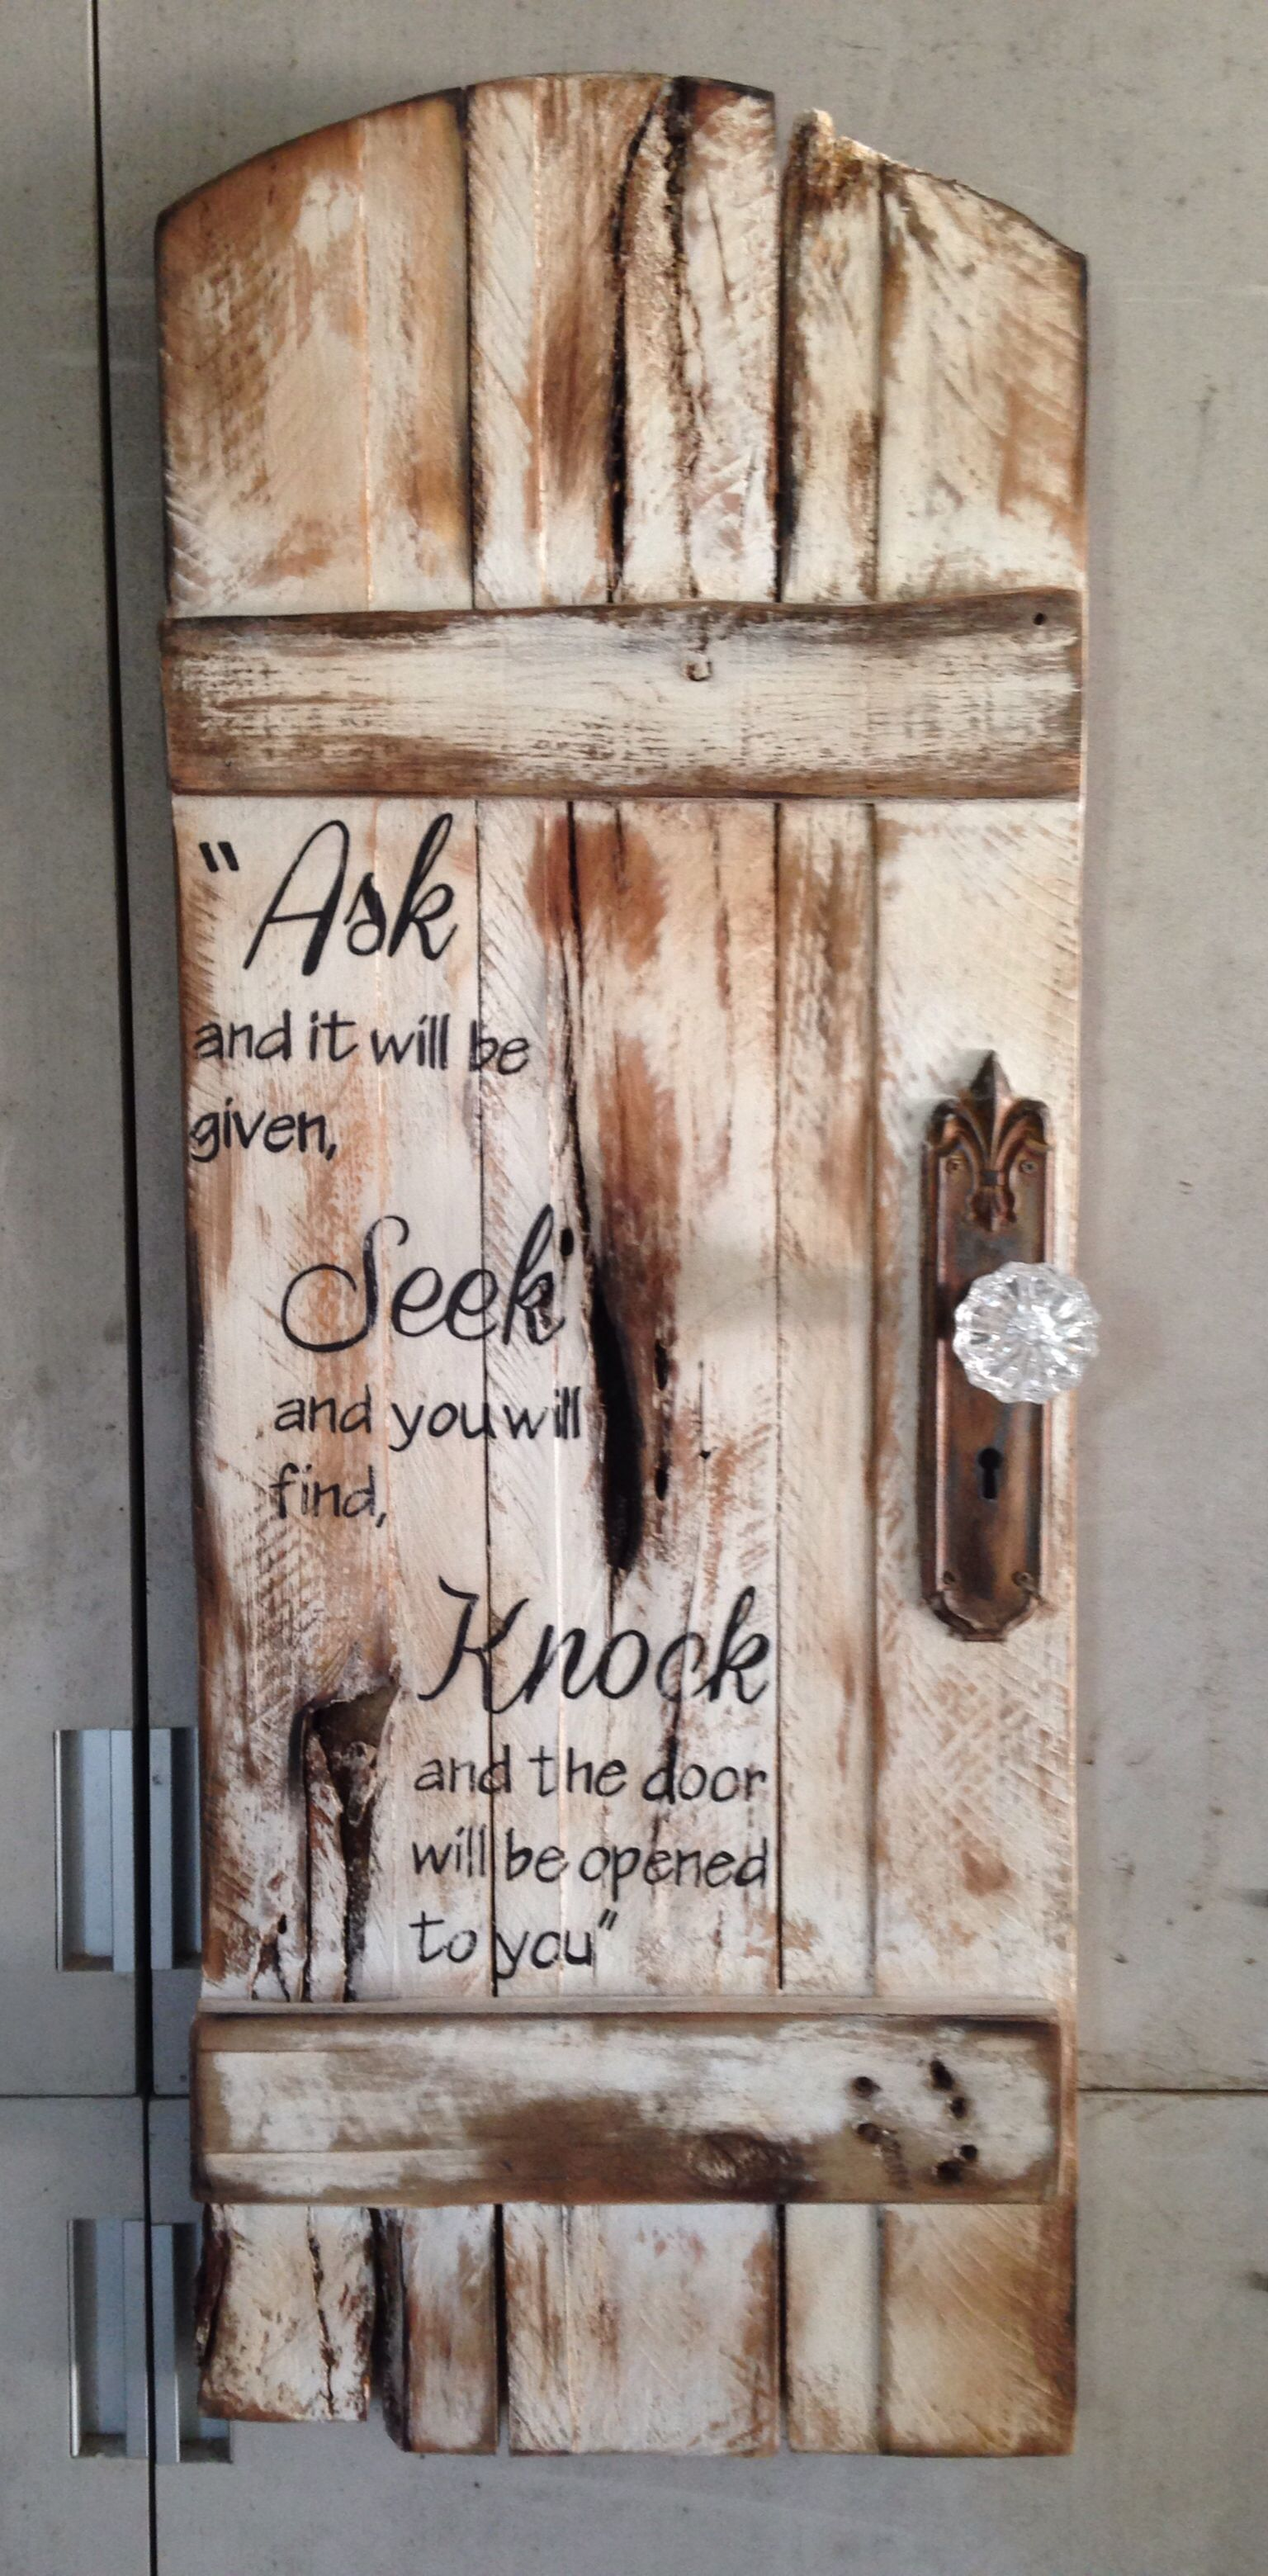 Ask Seek Knock Rustic Wooden Sign With Glass Doorknob For Sale By Charla Griffin Designs Rustic Doors Wood Crafts Wood Signs